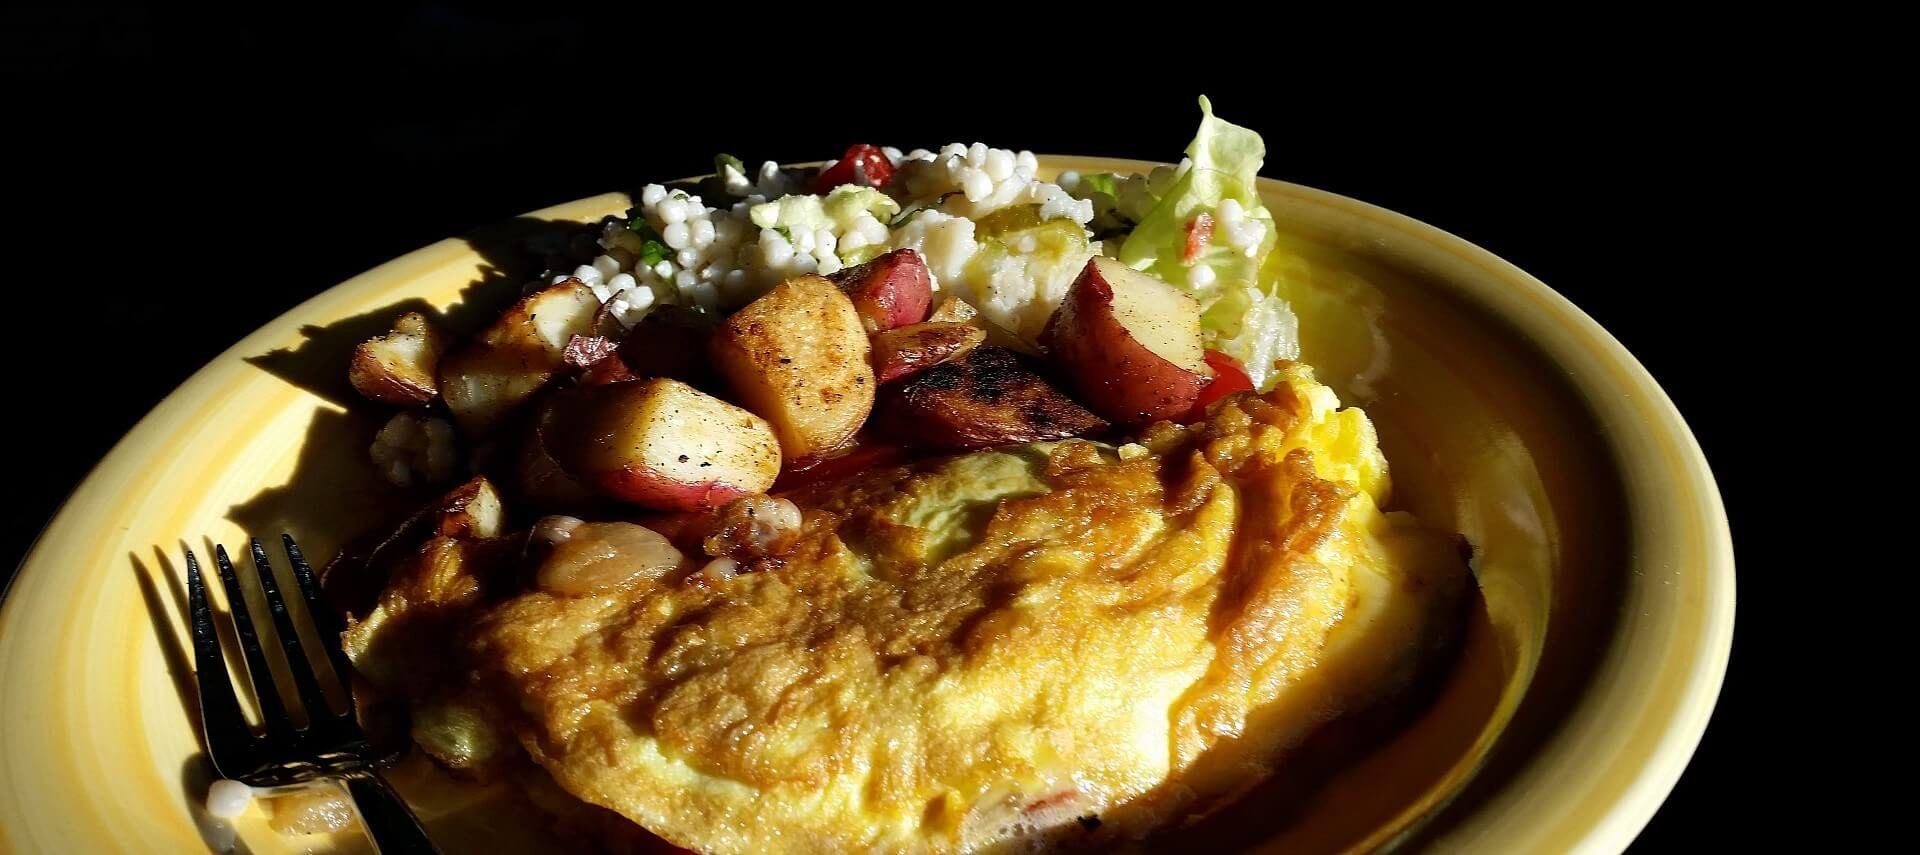 Yellow plate against a dark black background showing an omelette, diced redskin potatoes and silver fork.